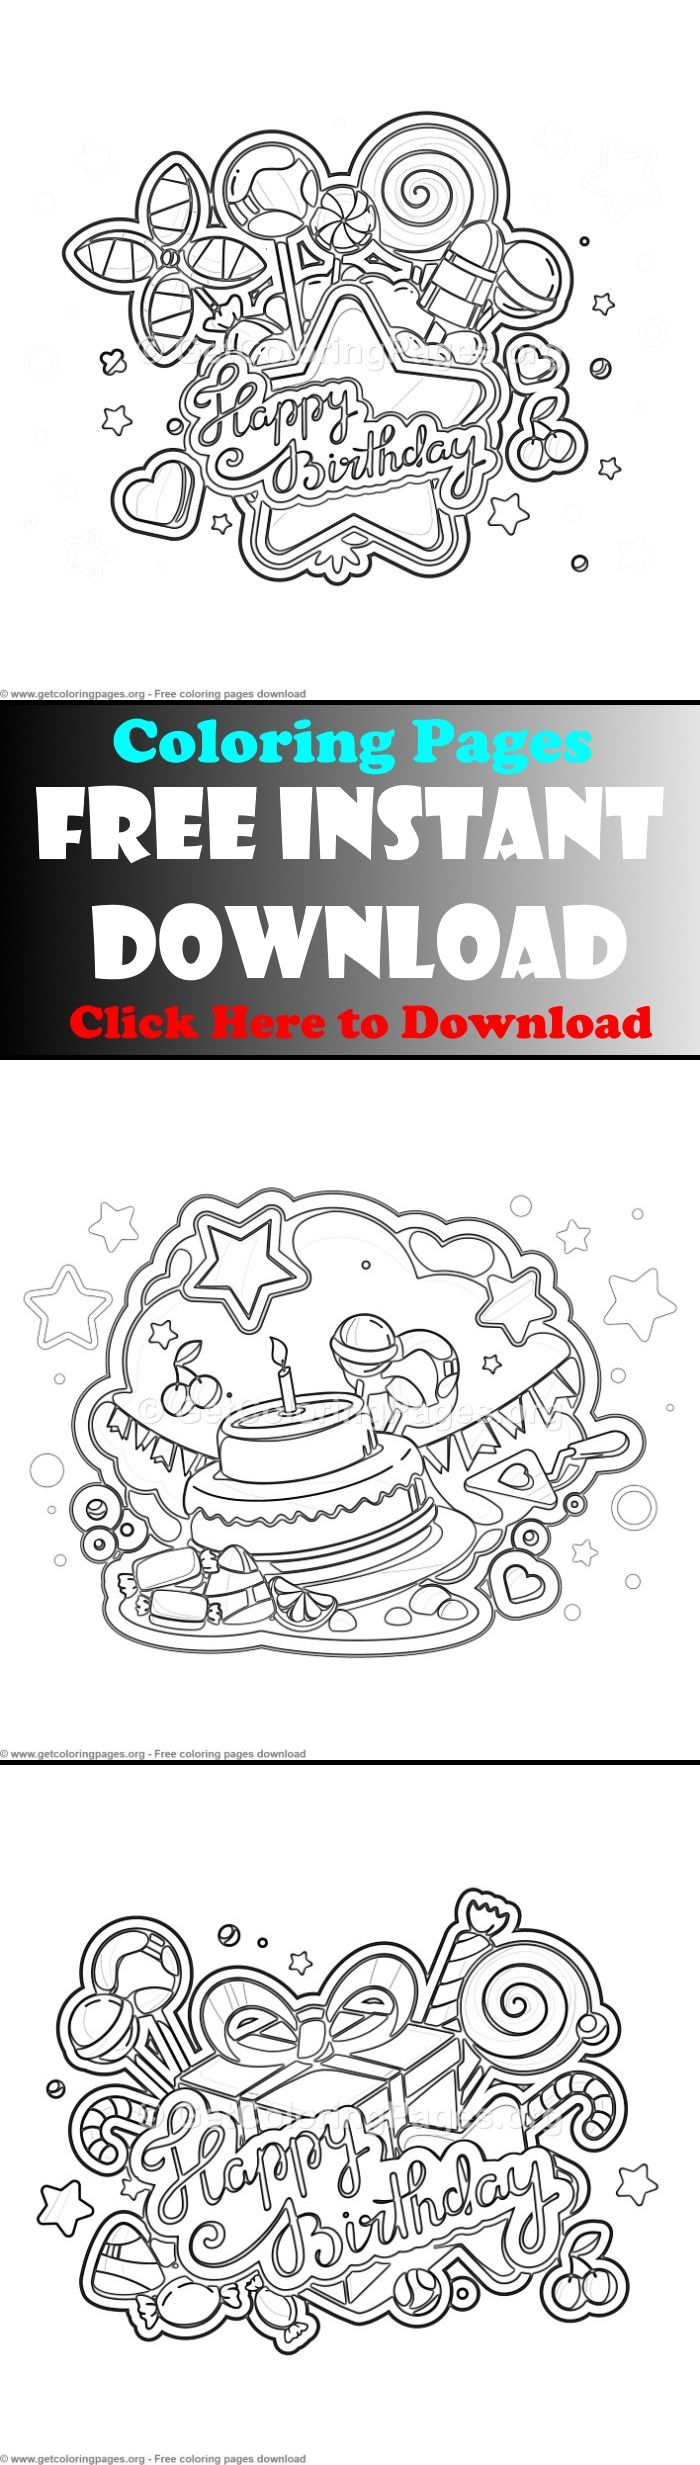 Free to download birthday card coloring page,printable ...